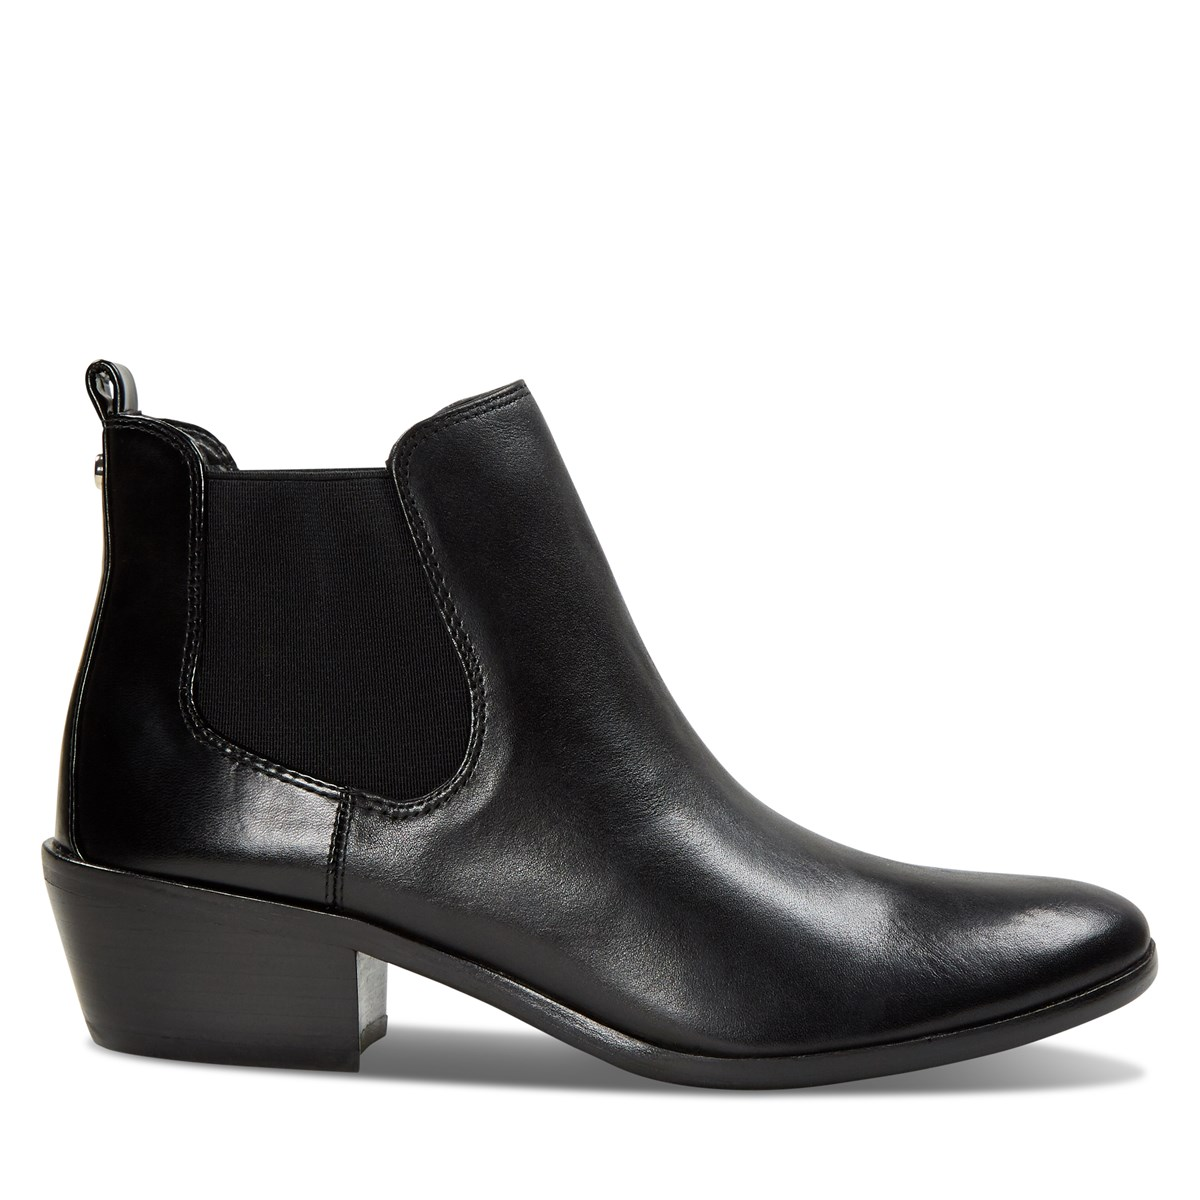 941bd2a26ab Women's Pauline Ankle Boots in Black